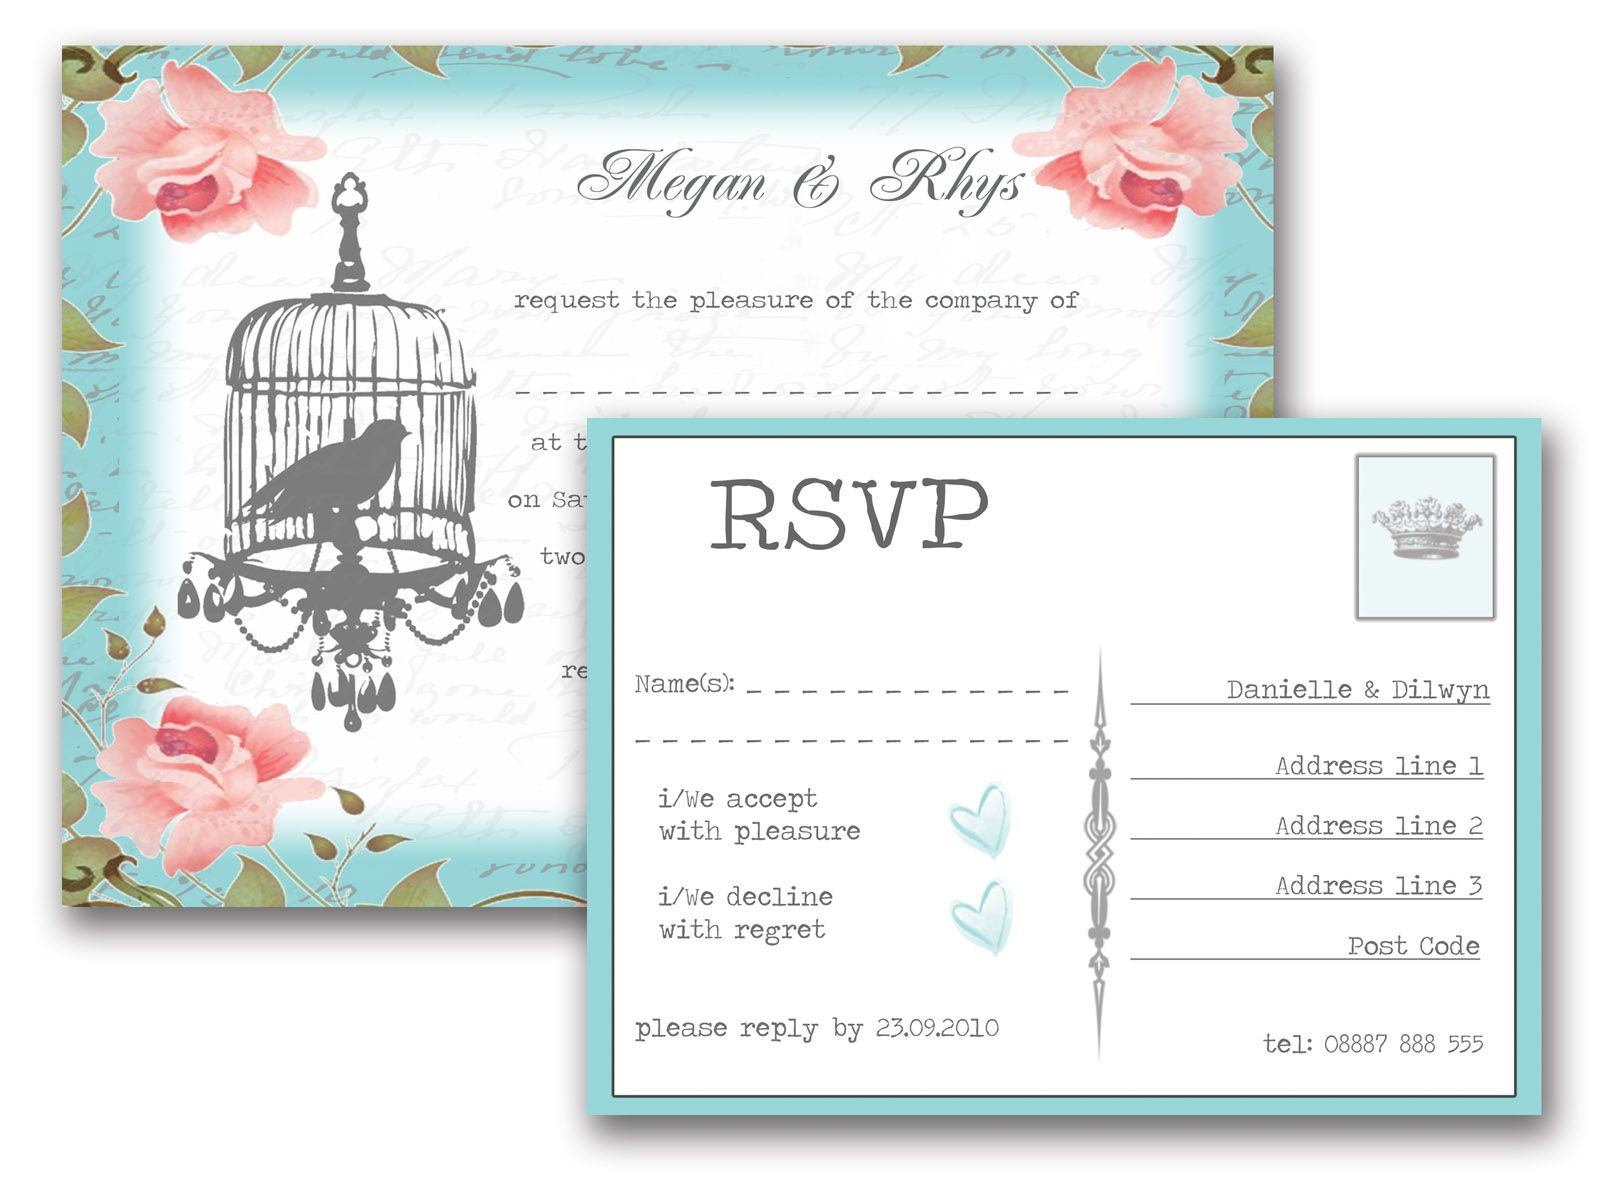 Birdcage Wedding Invitation Sample A 0 99 Party People Party Hard